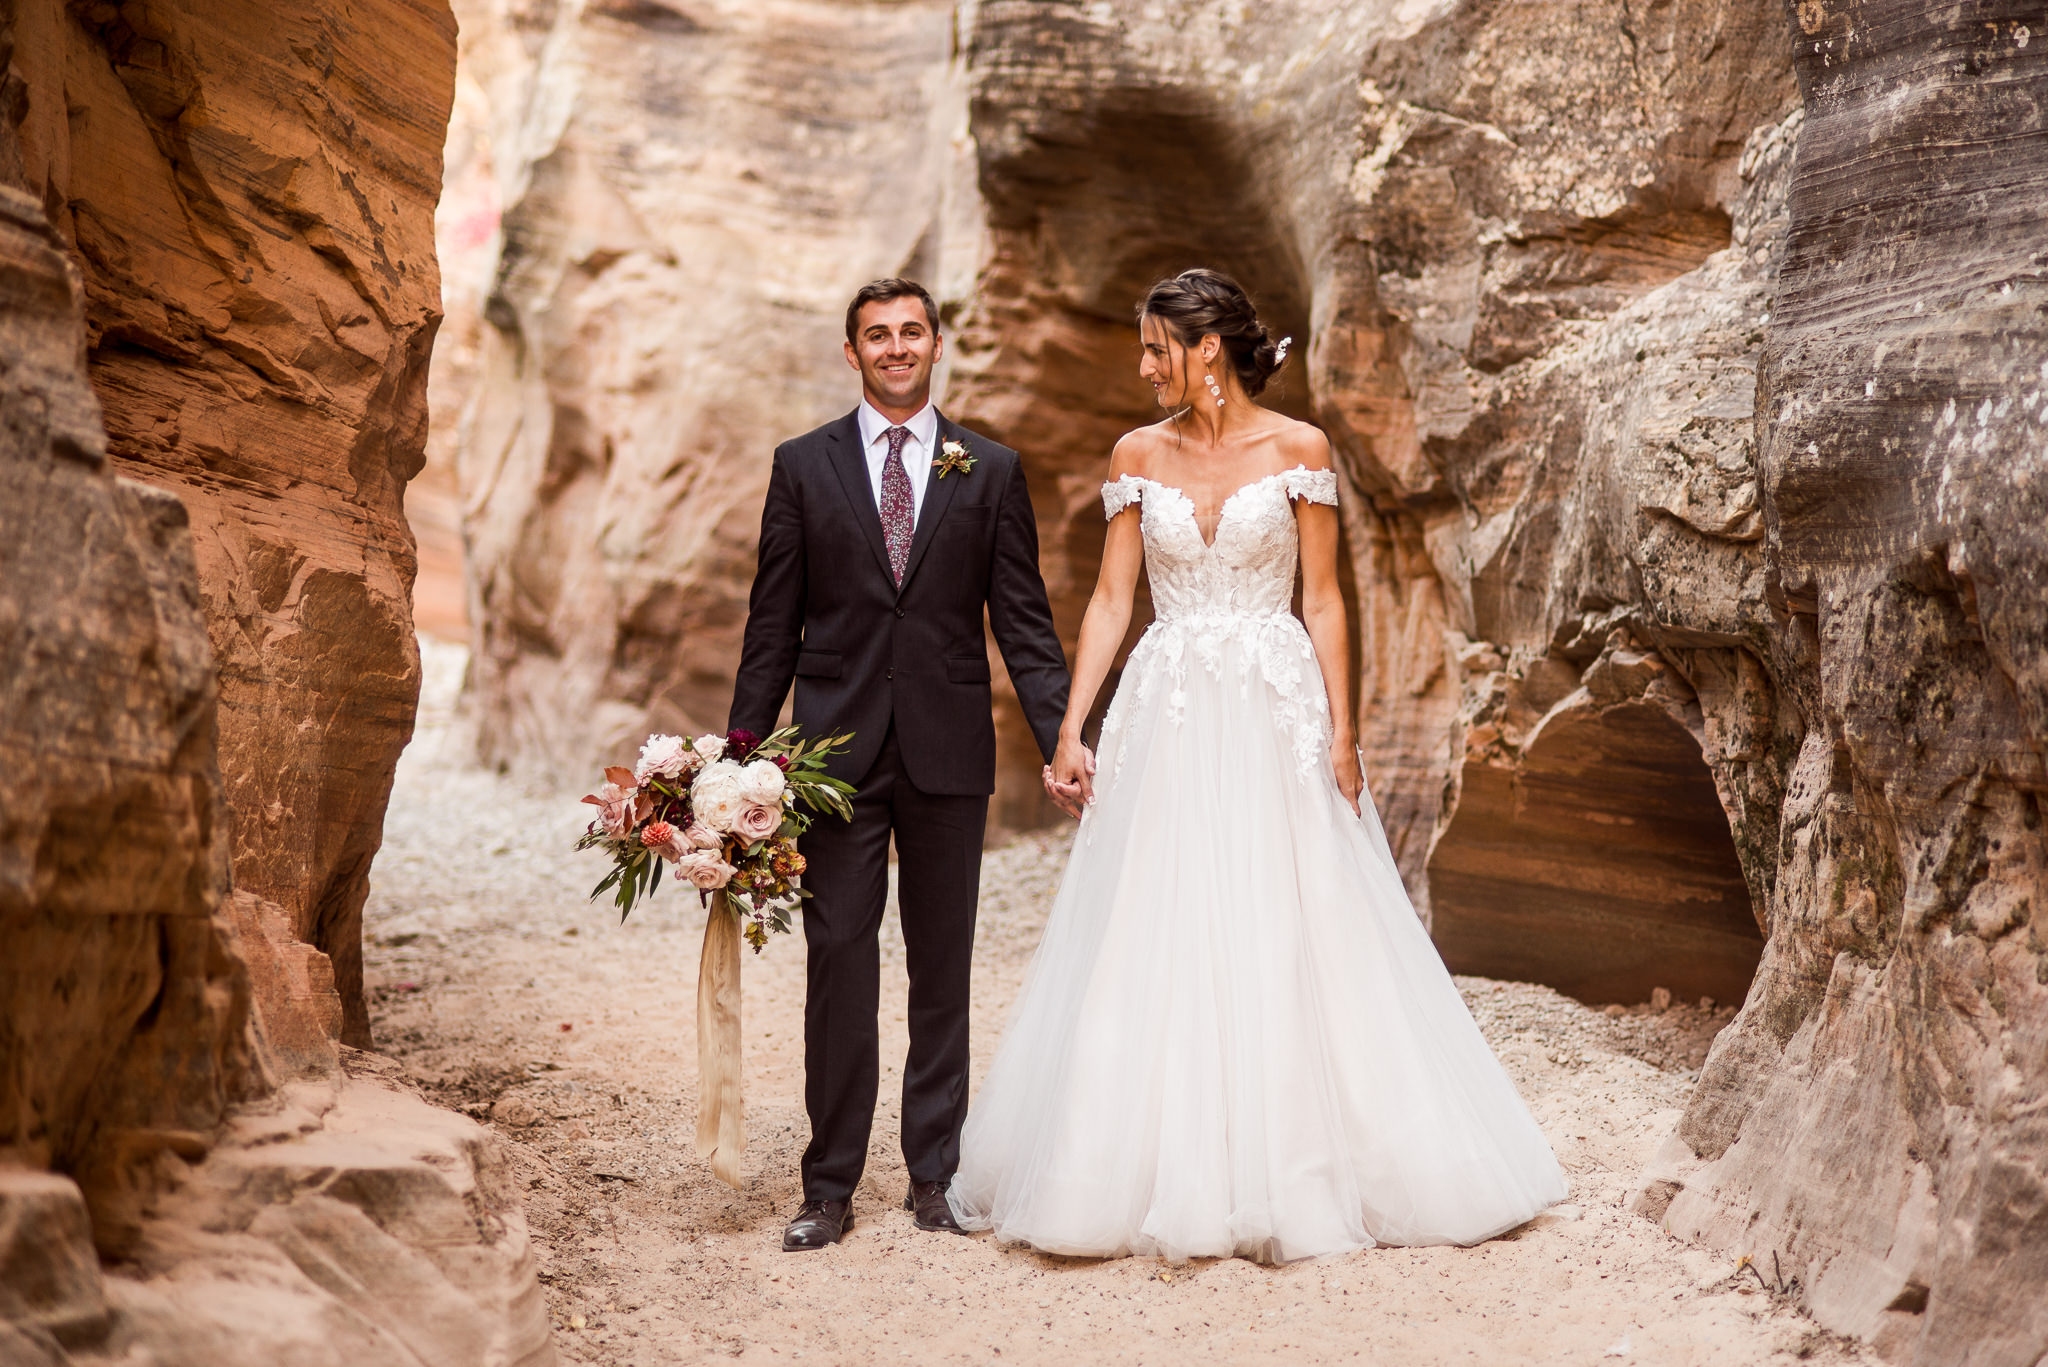 Bride and Groom take Portraits in a slot Canyon